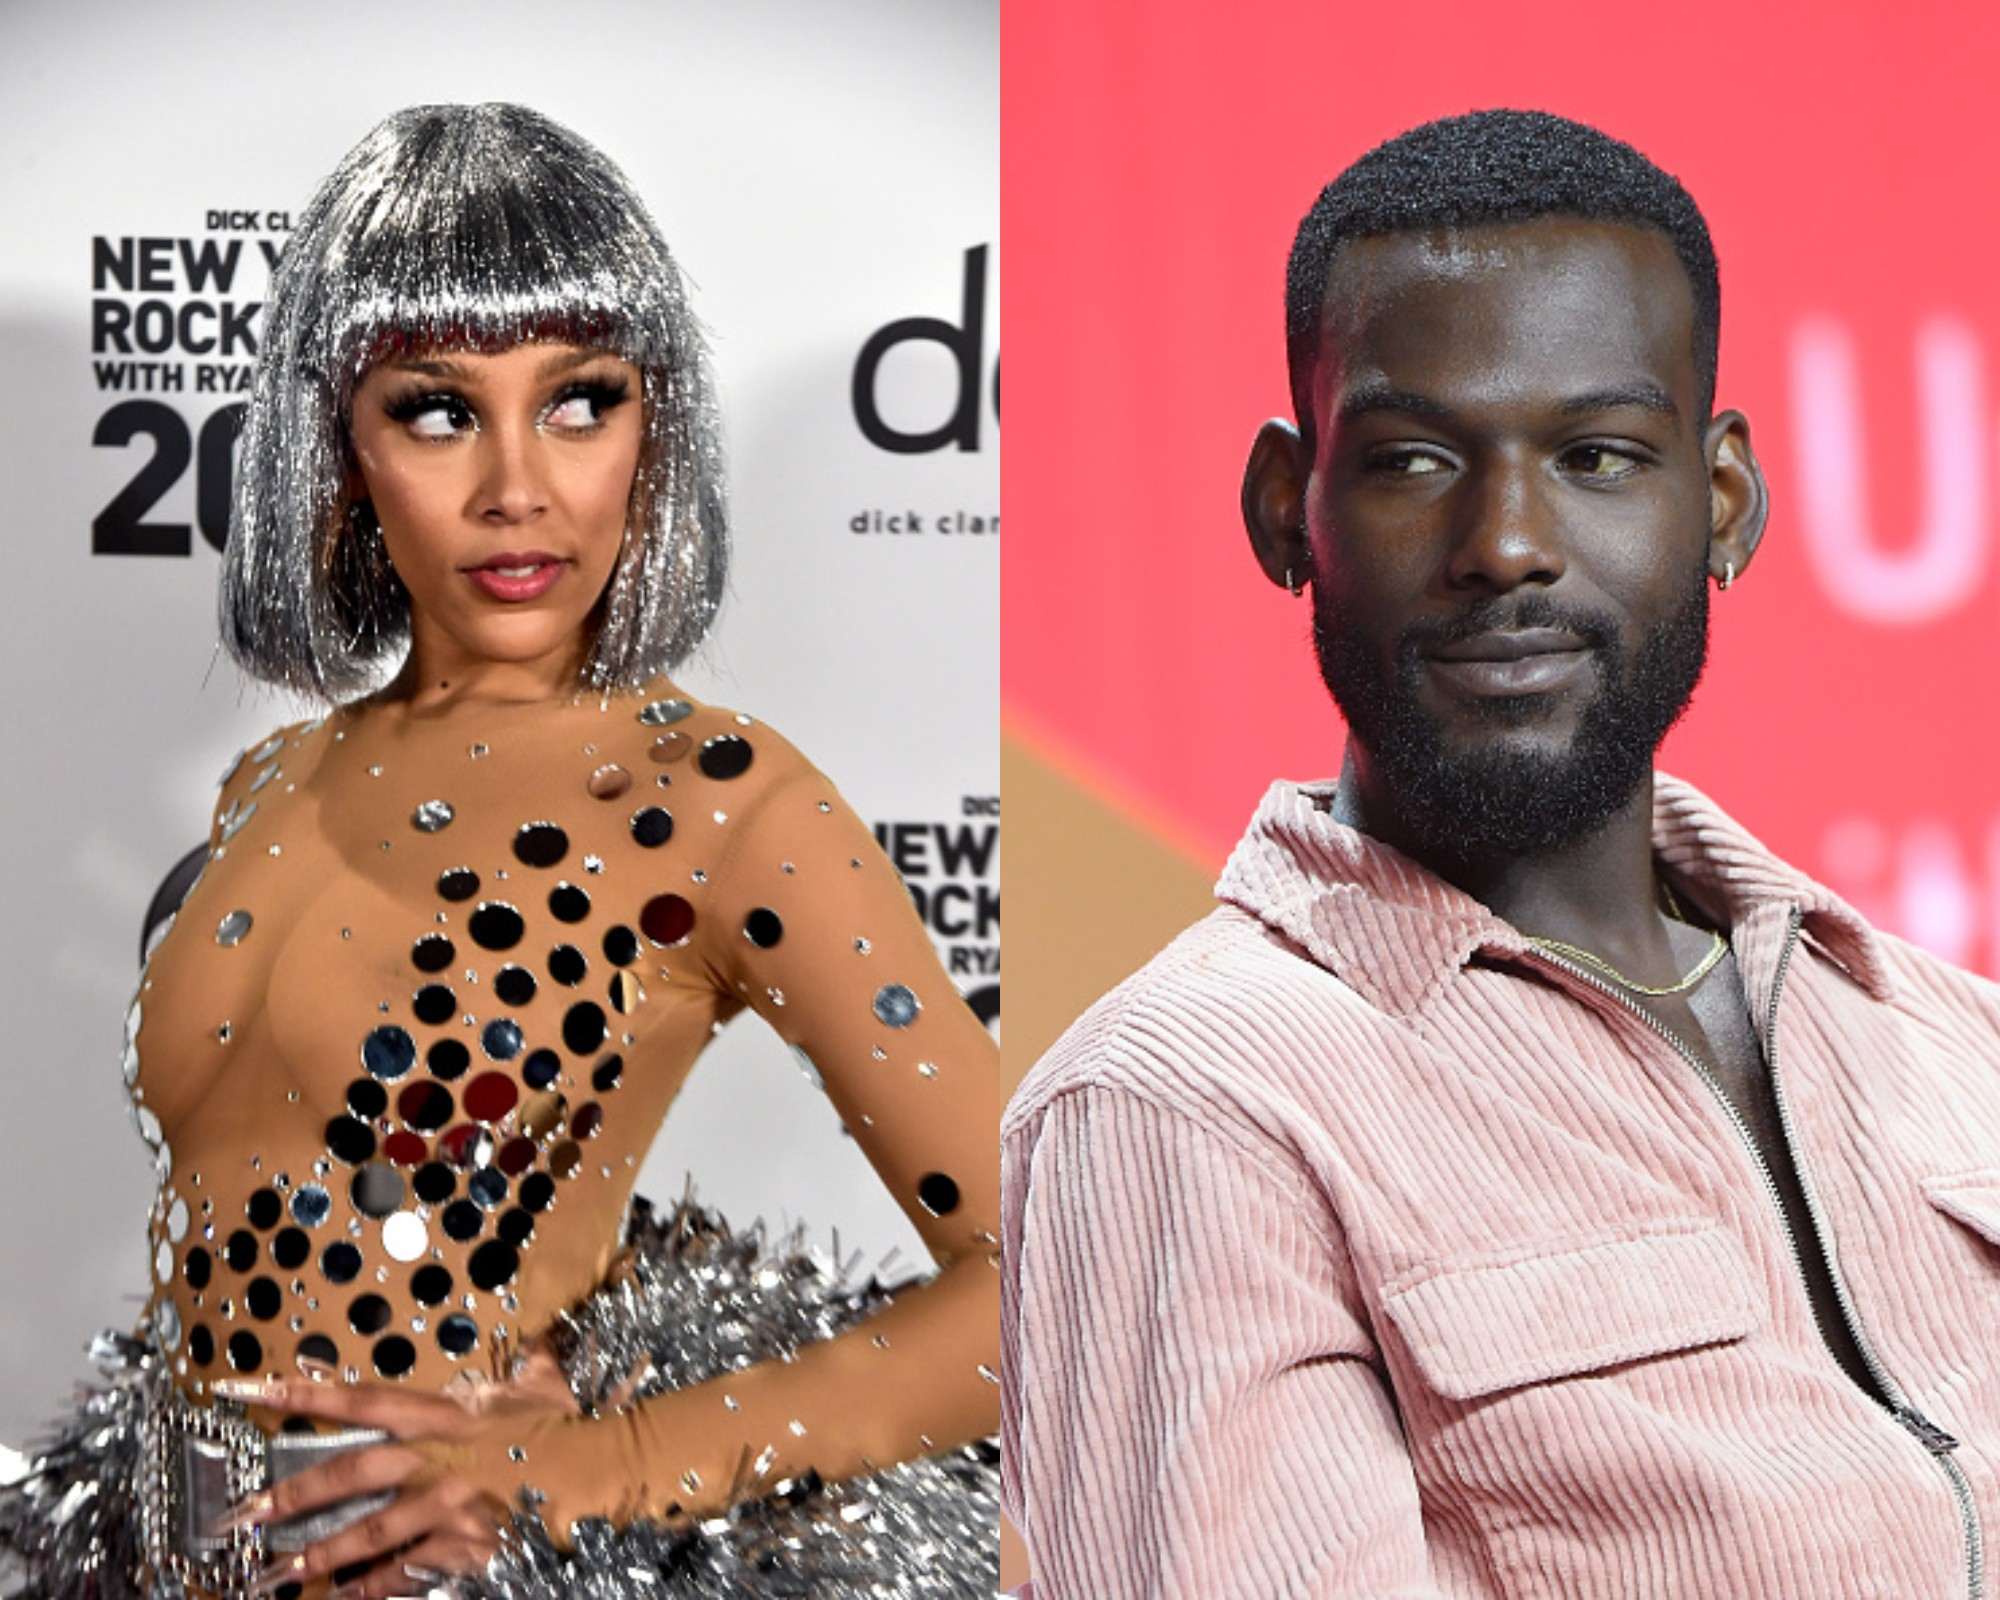 Doja Cat Kofi Siriboe Streets Music Video